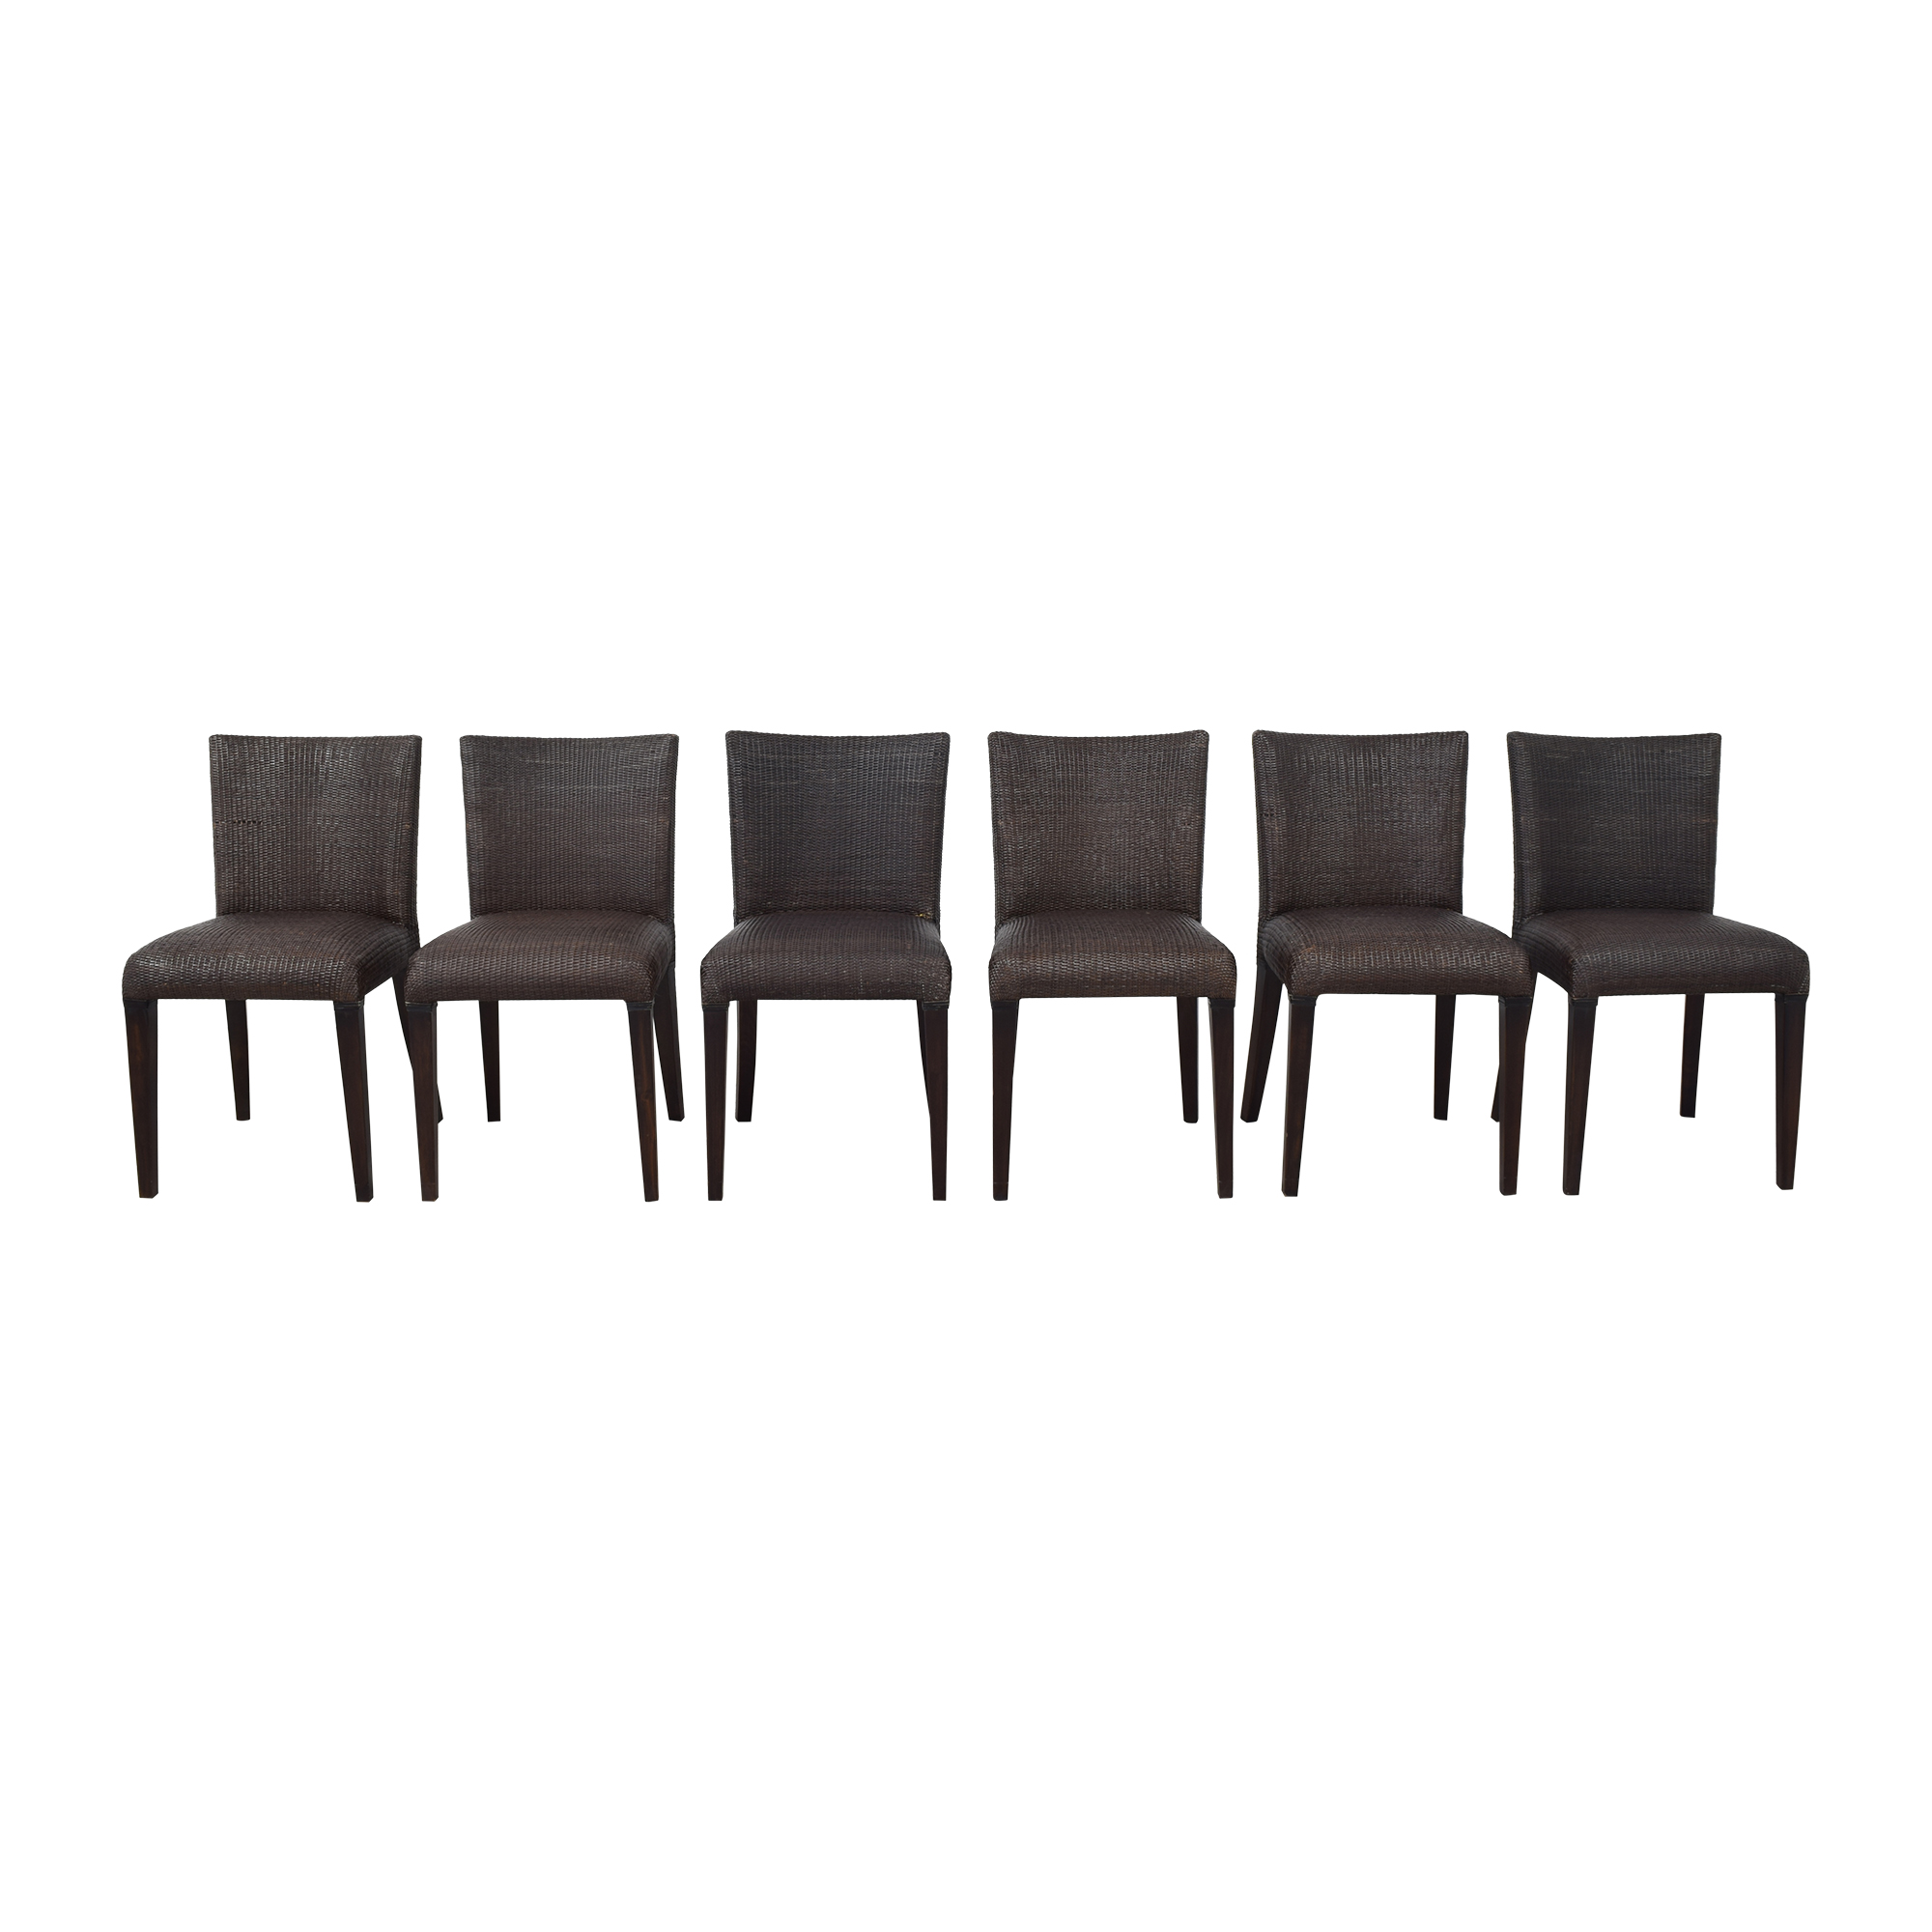 Gaudions Gaudions Woven Dining Side Chairs ct